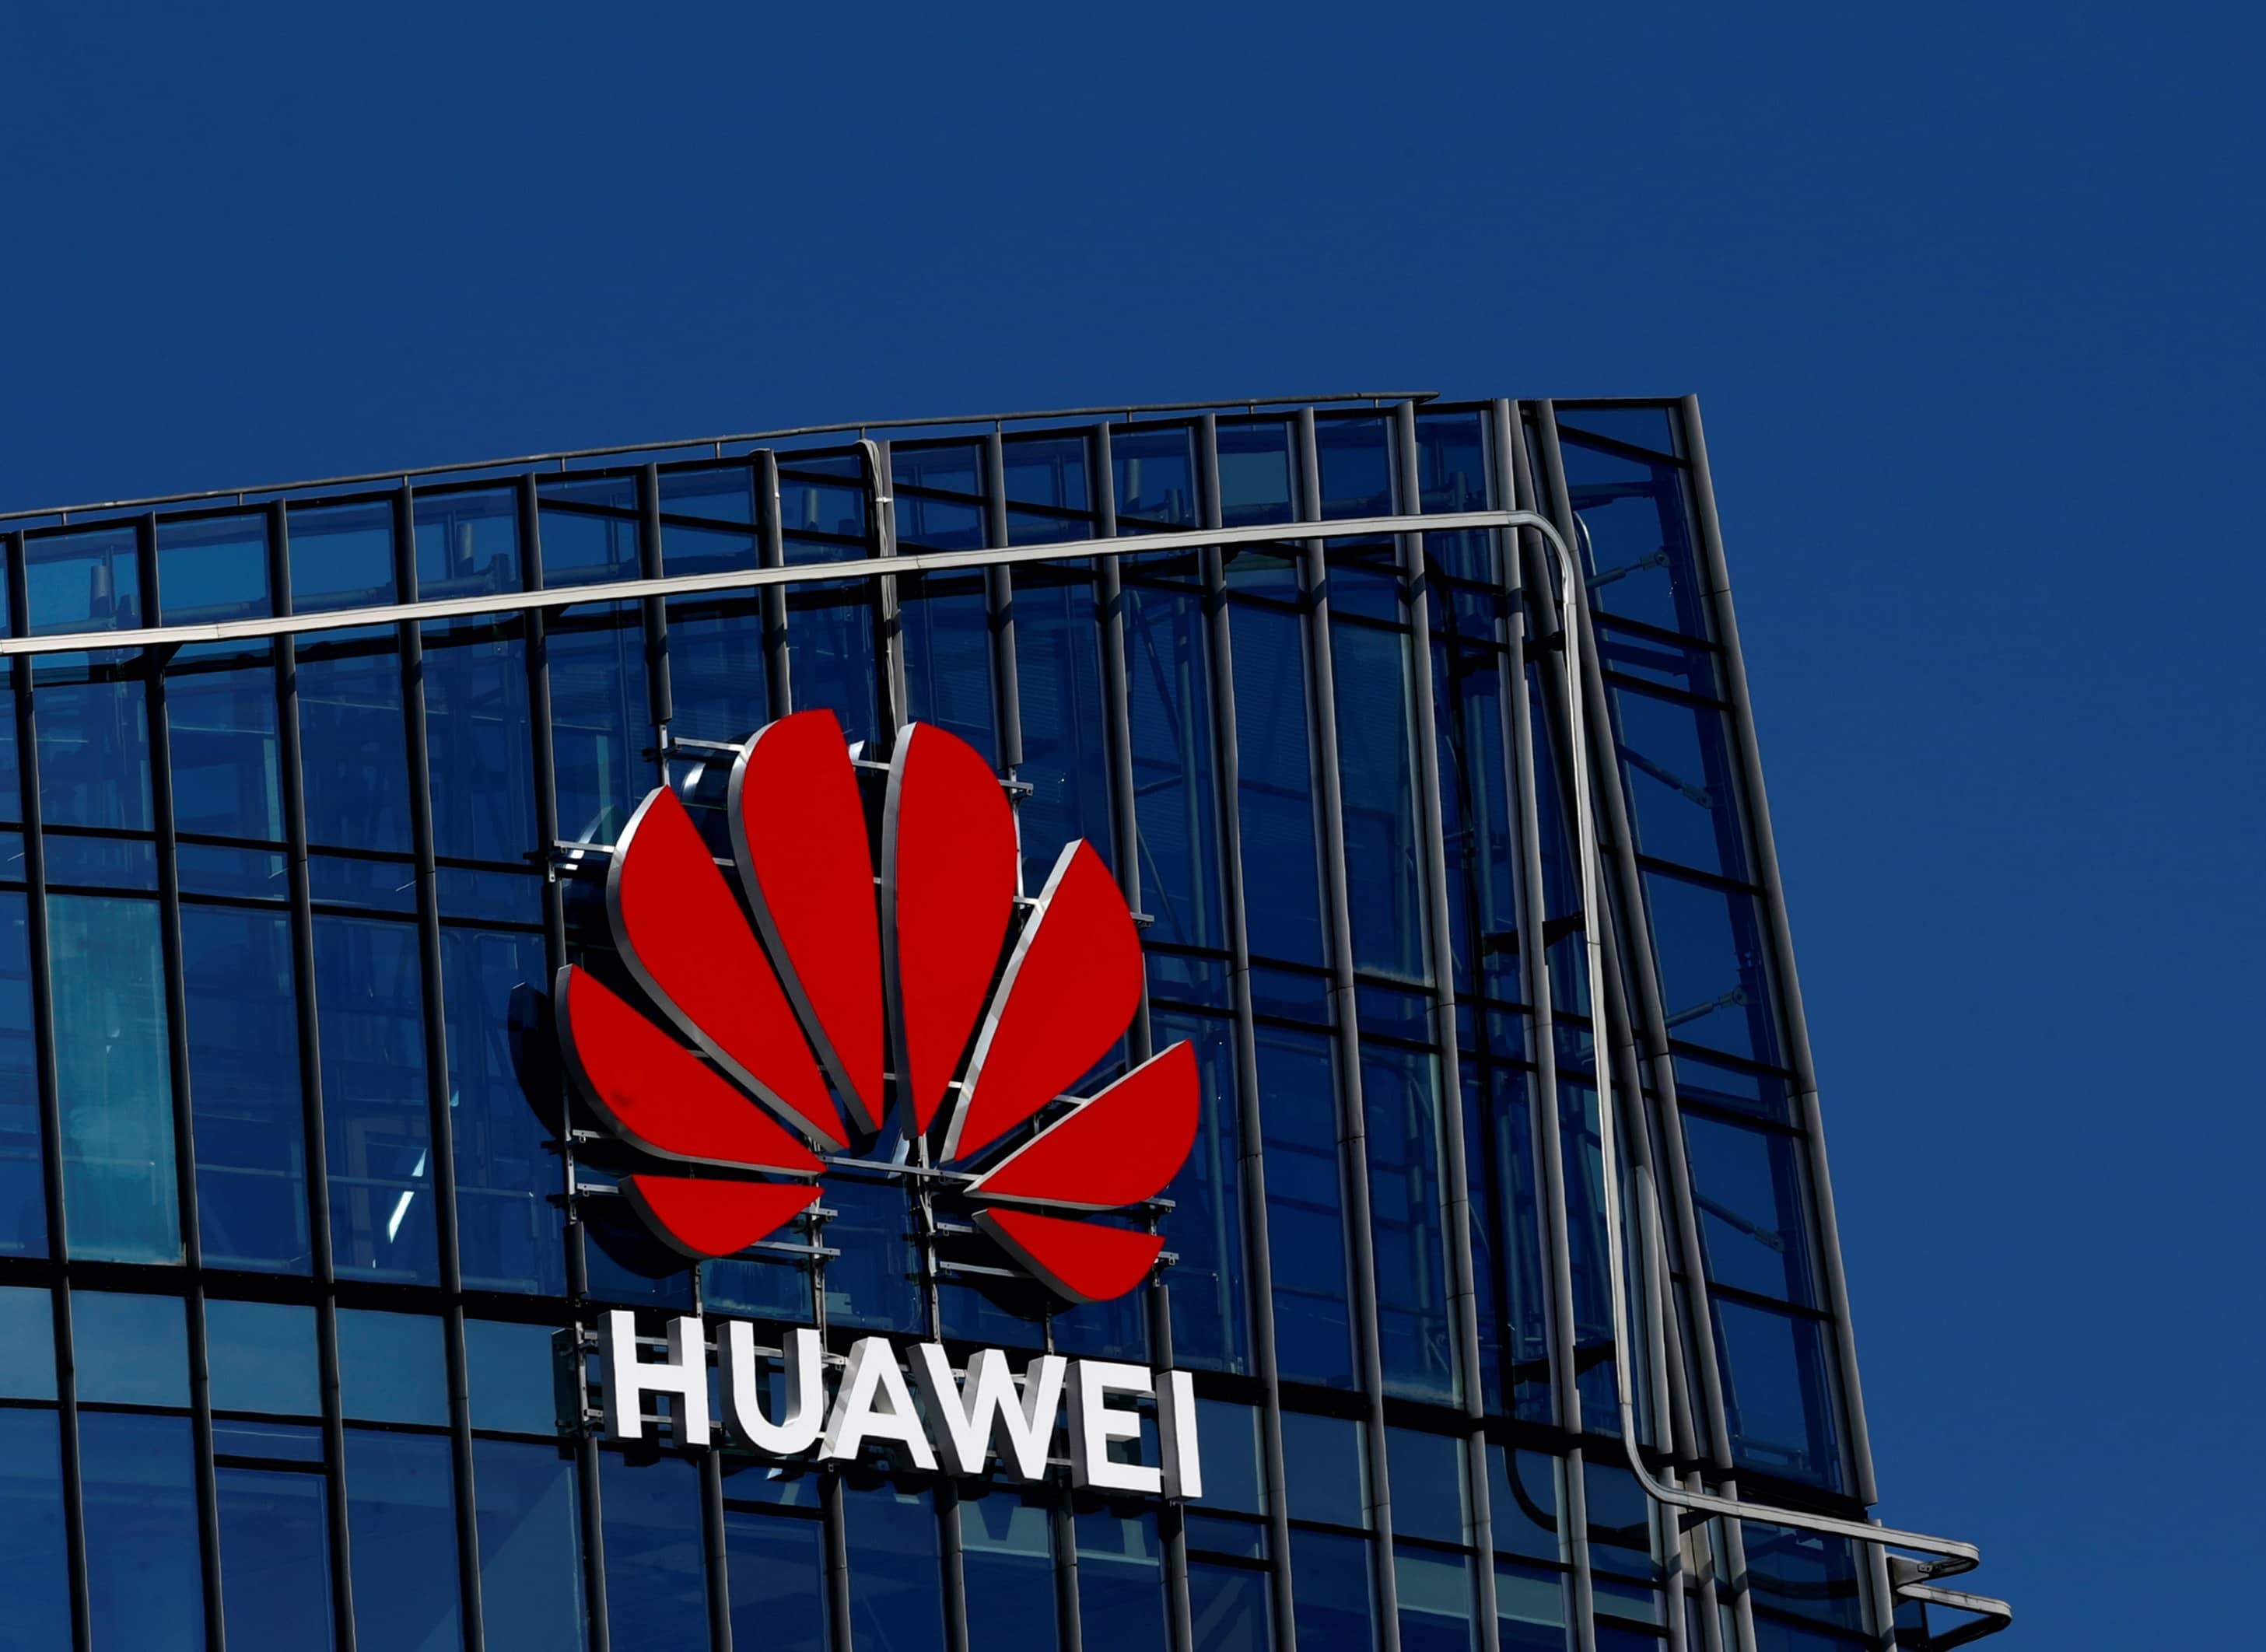 HUAWEI, ZTE LOSE PATENT APPEAL CASES AT UK SUPREME COURT